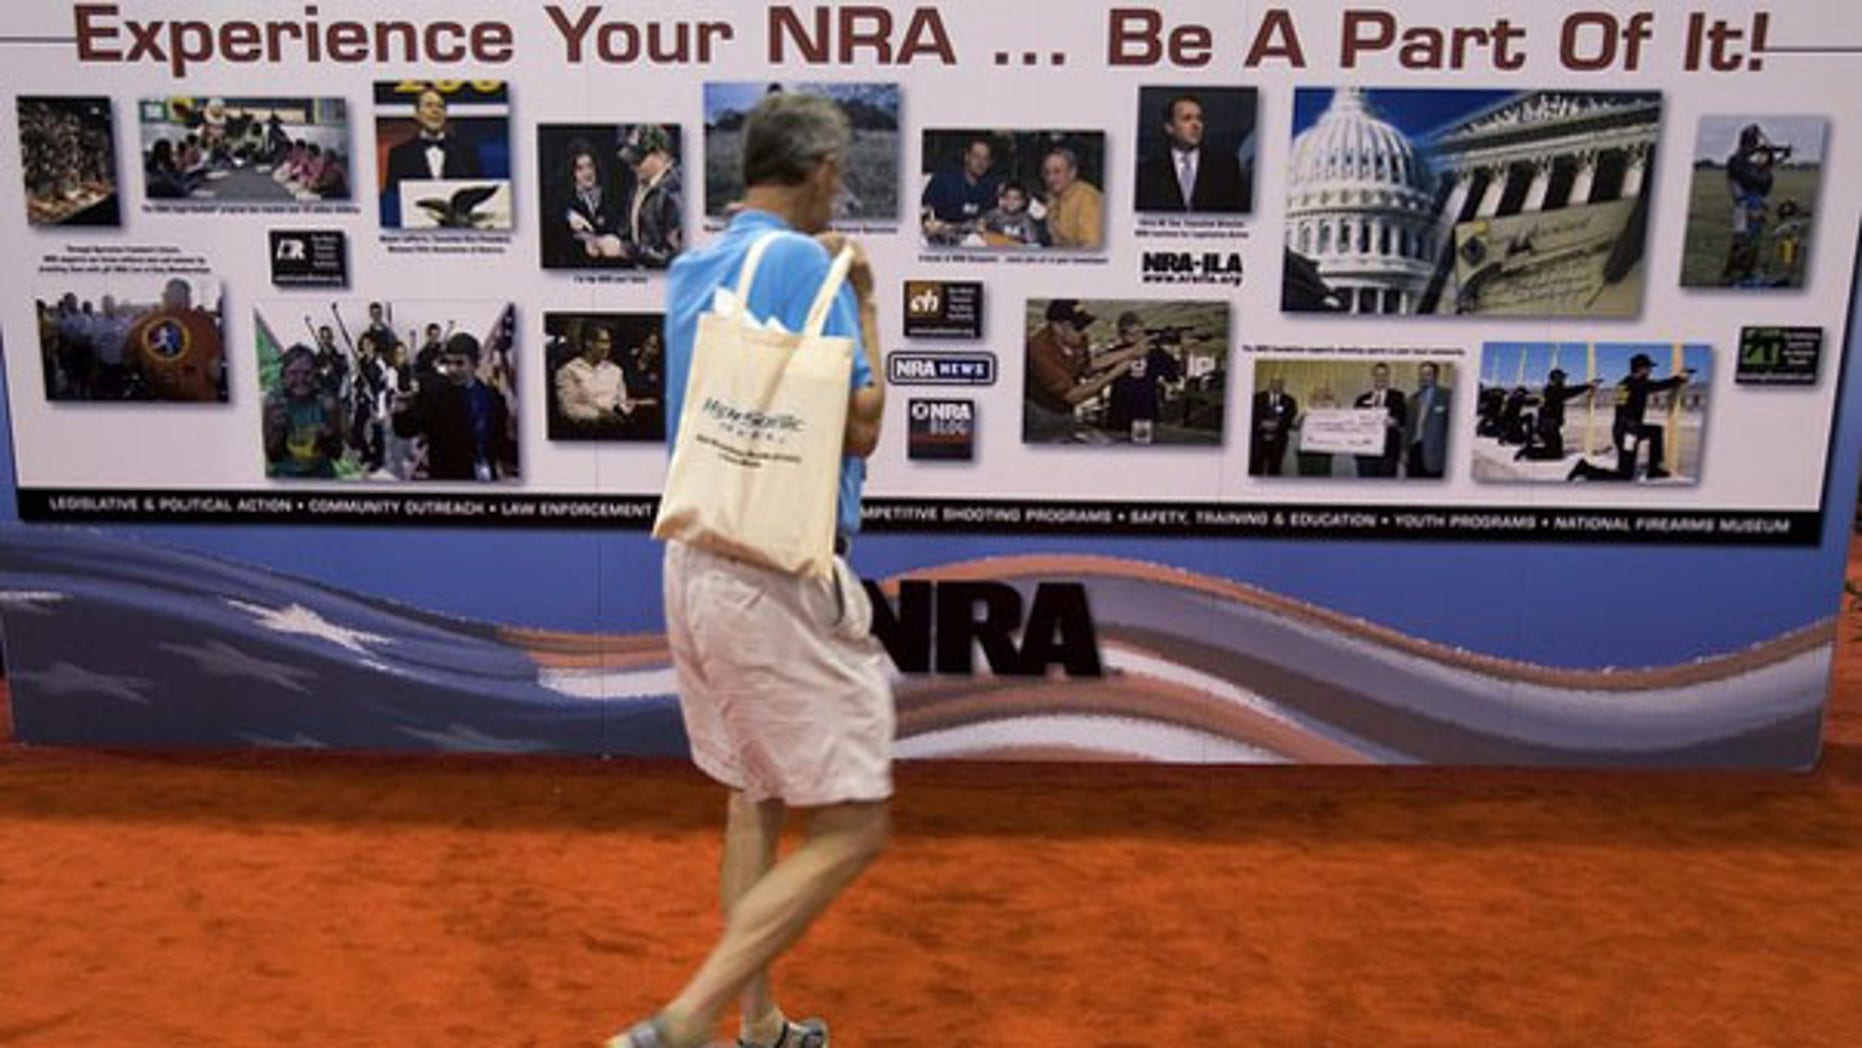 May 15: A man walks past a NRA banner during the National Rifle Association's 139th annual meeting in Charlotte, N.C. (Reuters)